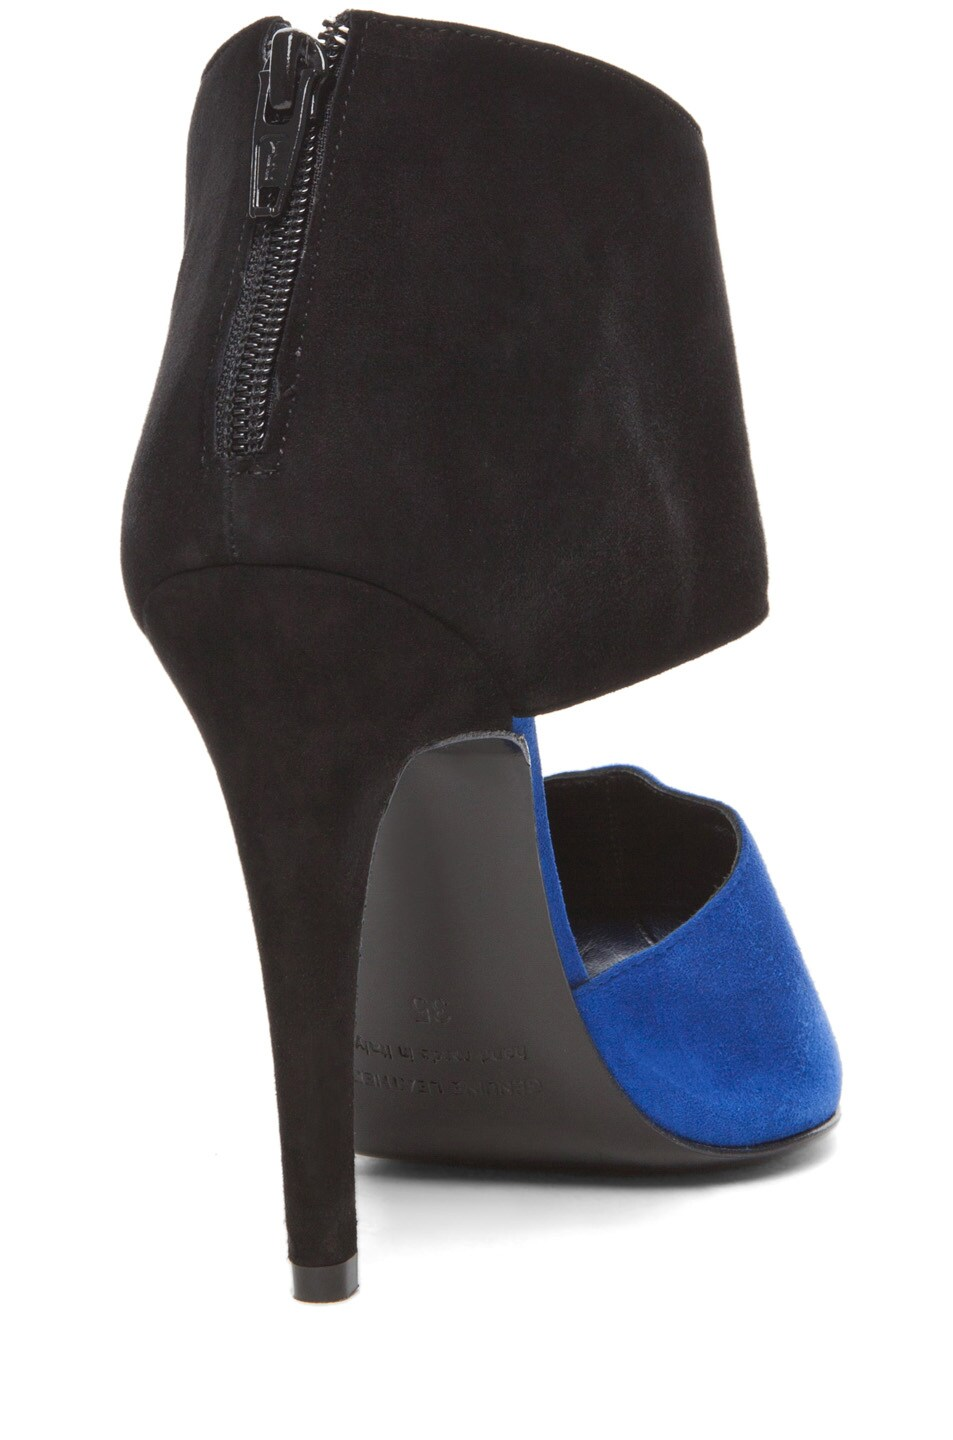 Image 3 of Pierre Hardy Multi Colored Heel in Blue